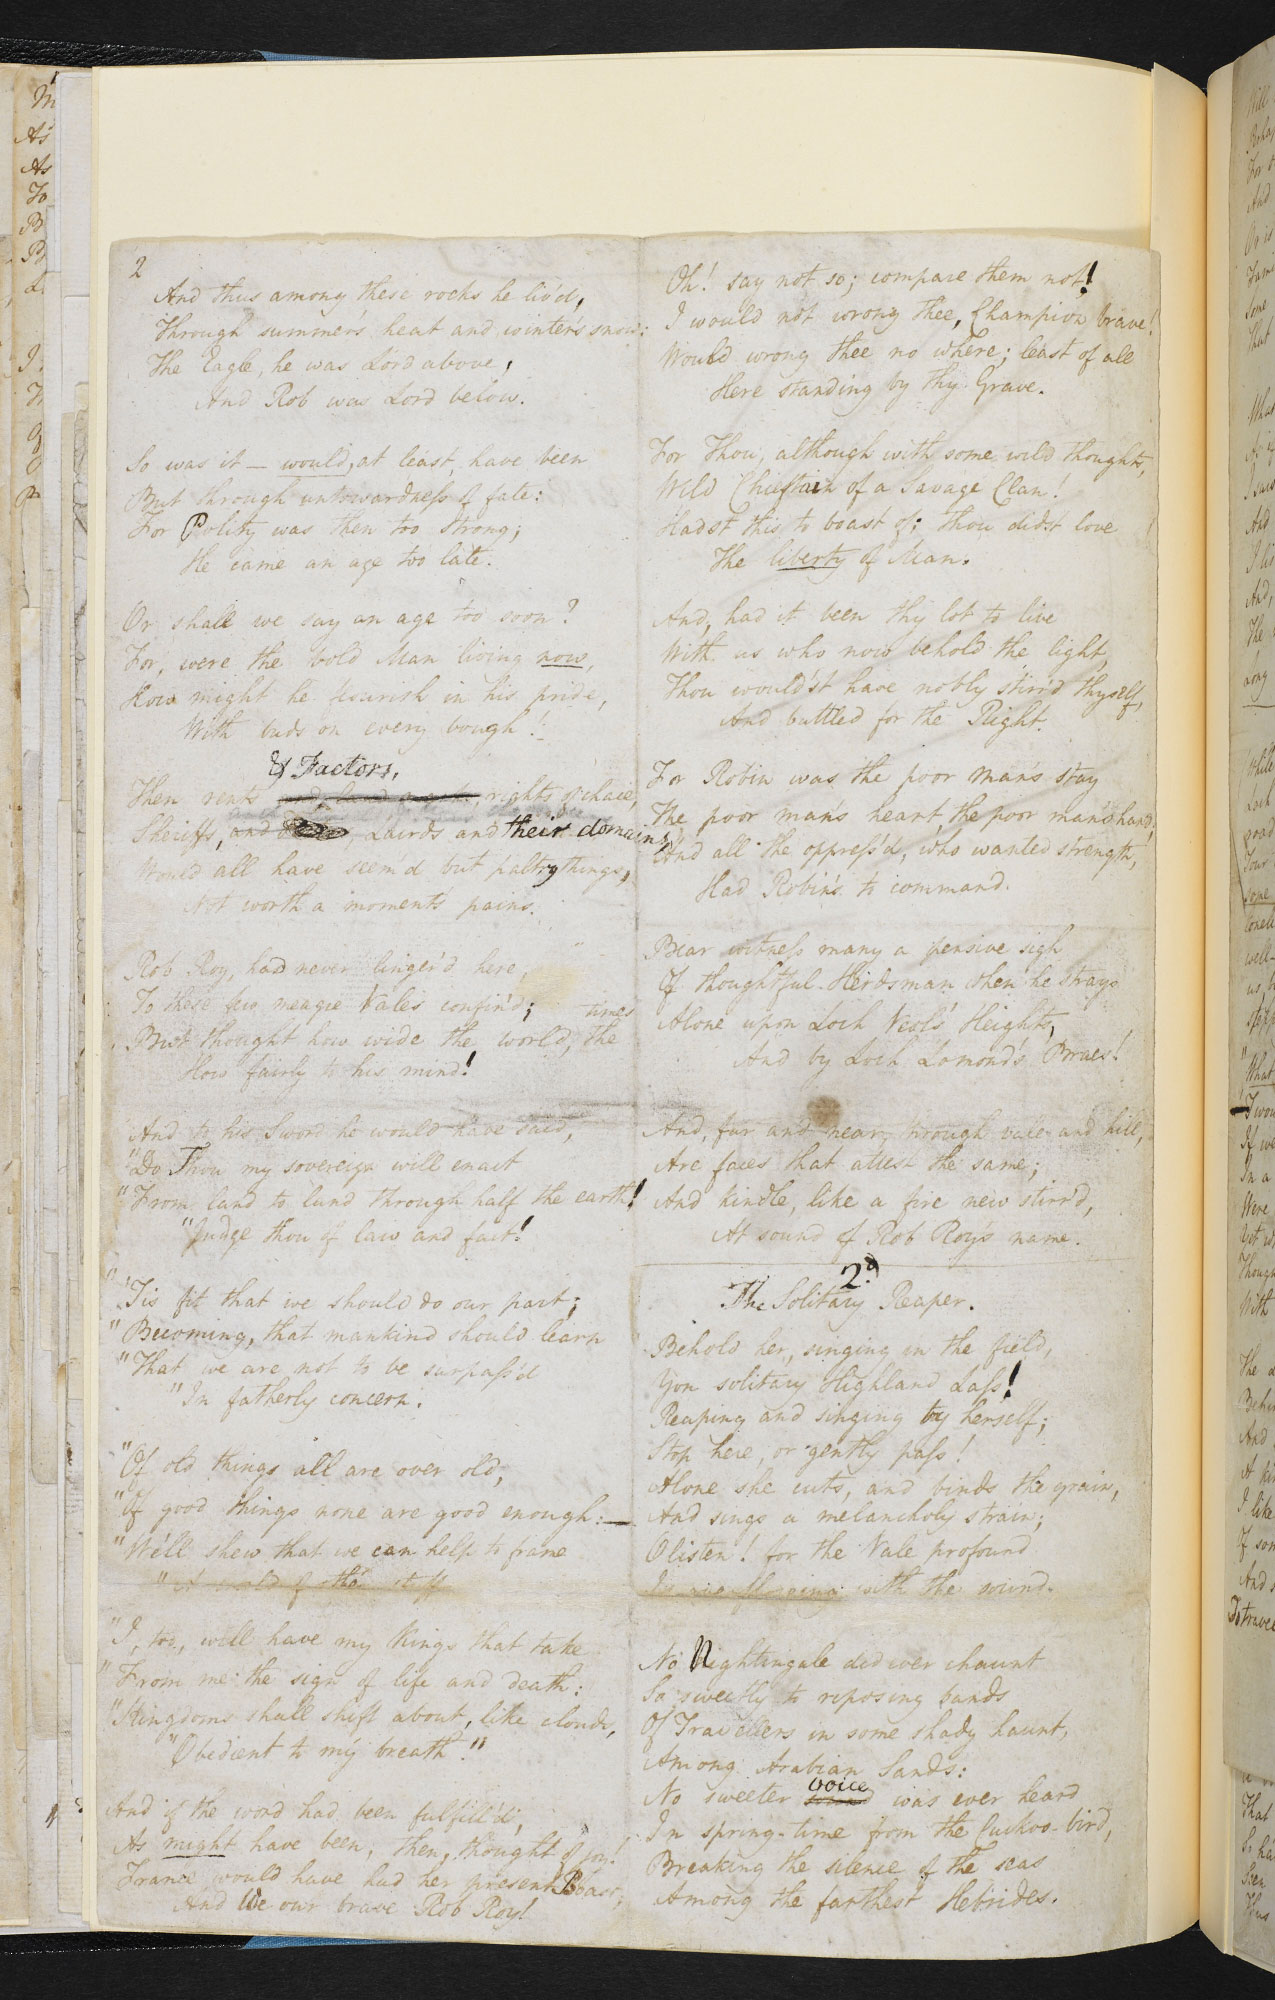 Manuscript of the printer's copy of 'The Solitary Reaper' by